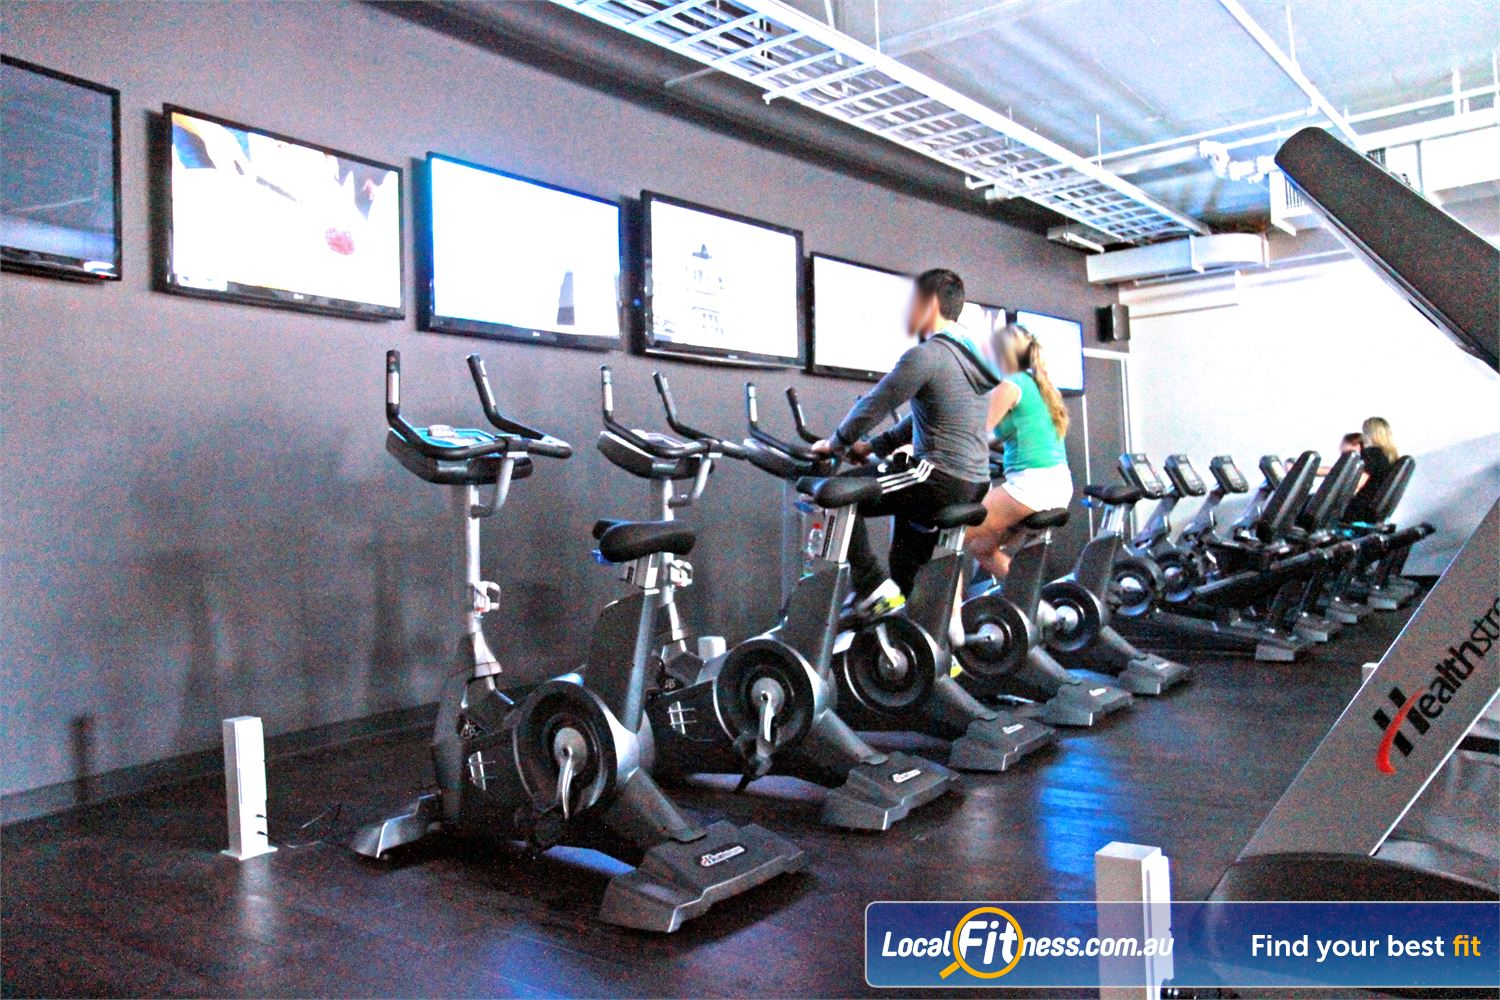 Goodlife Health Clubs Robina The fully equipped cardio are at Goodlife Robina gym.